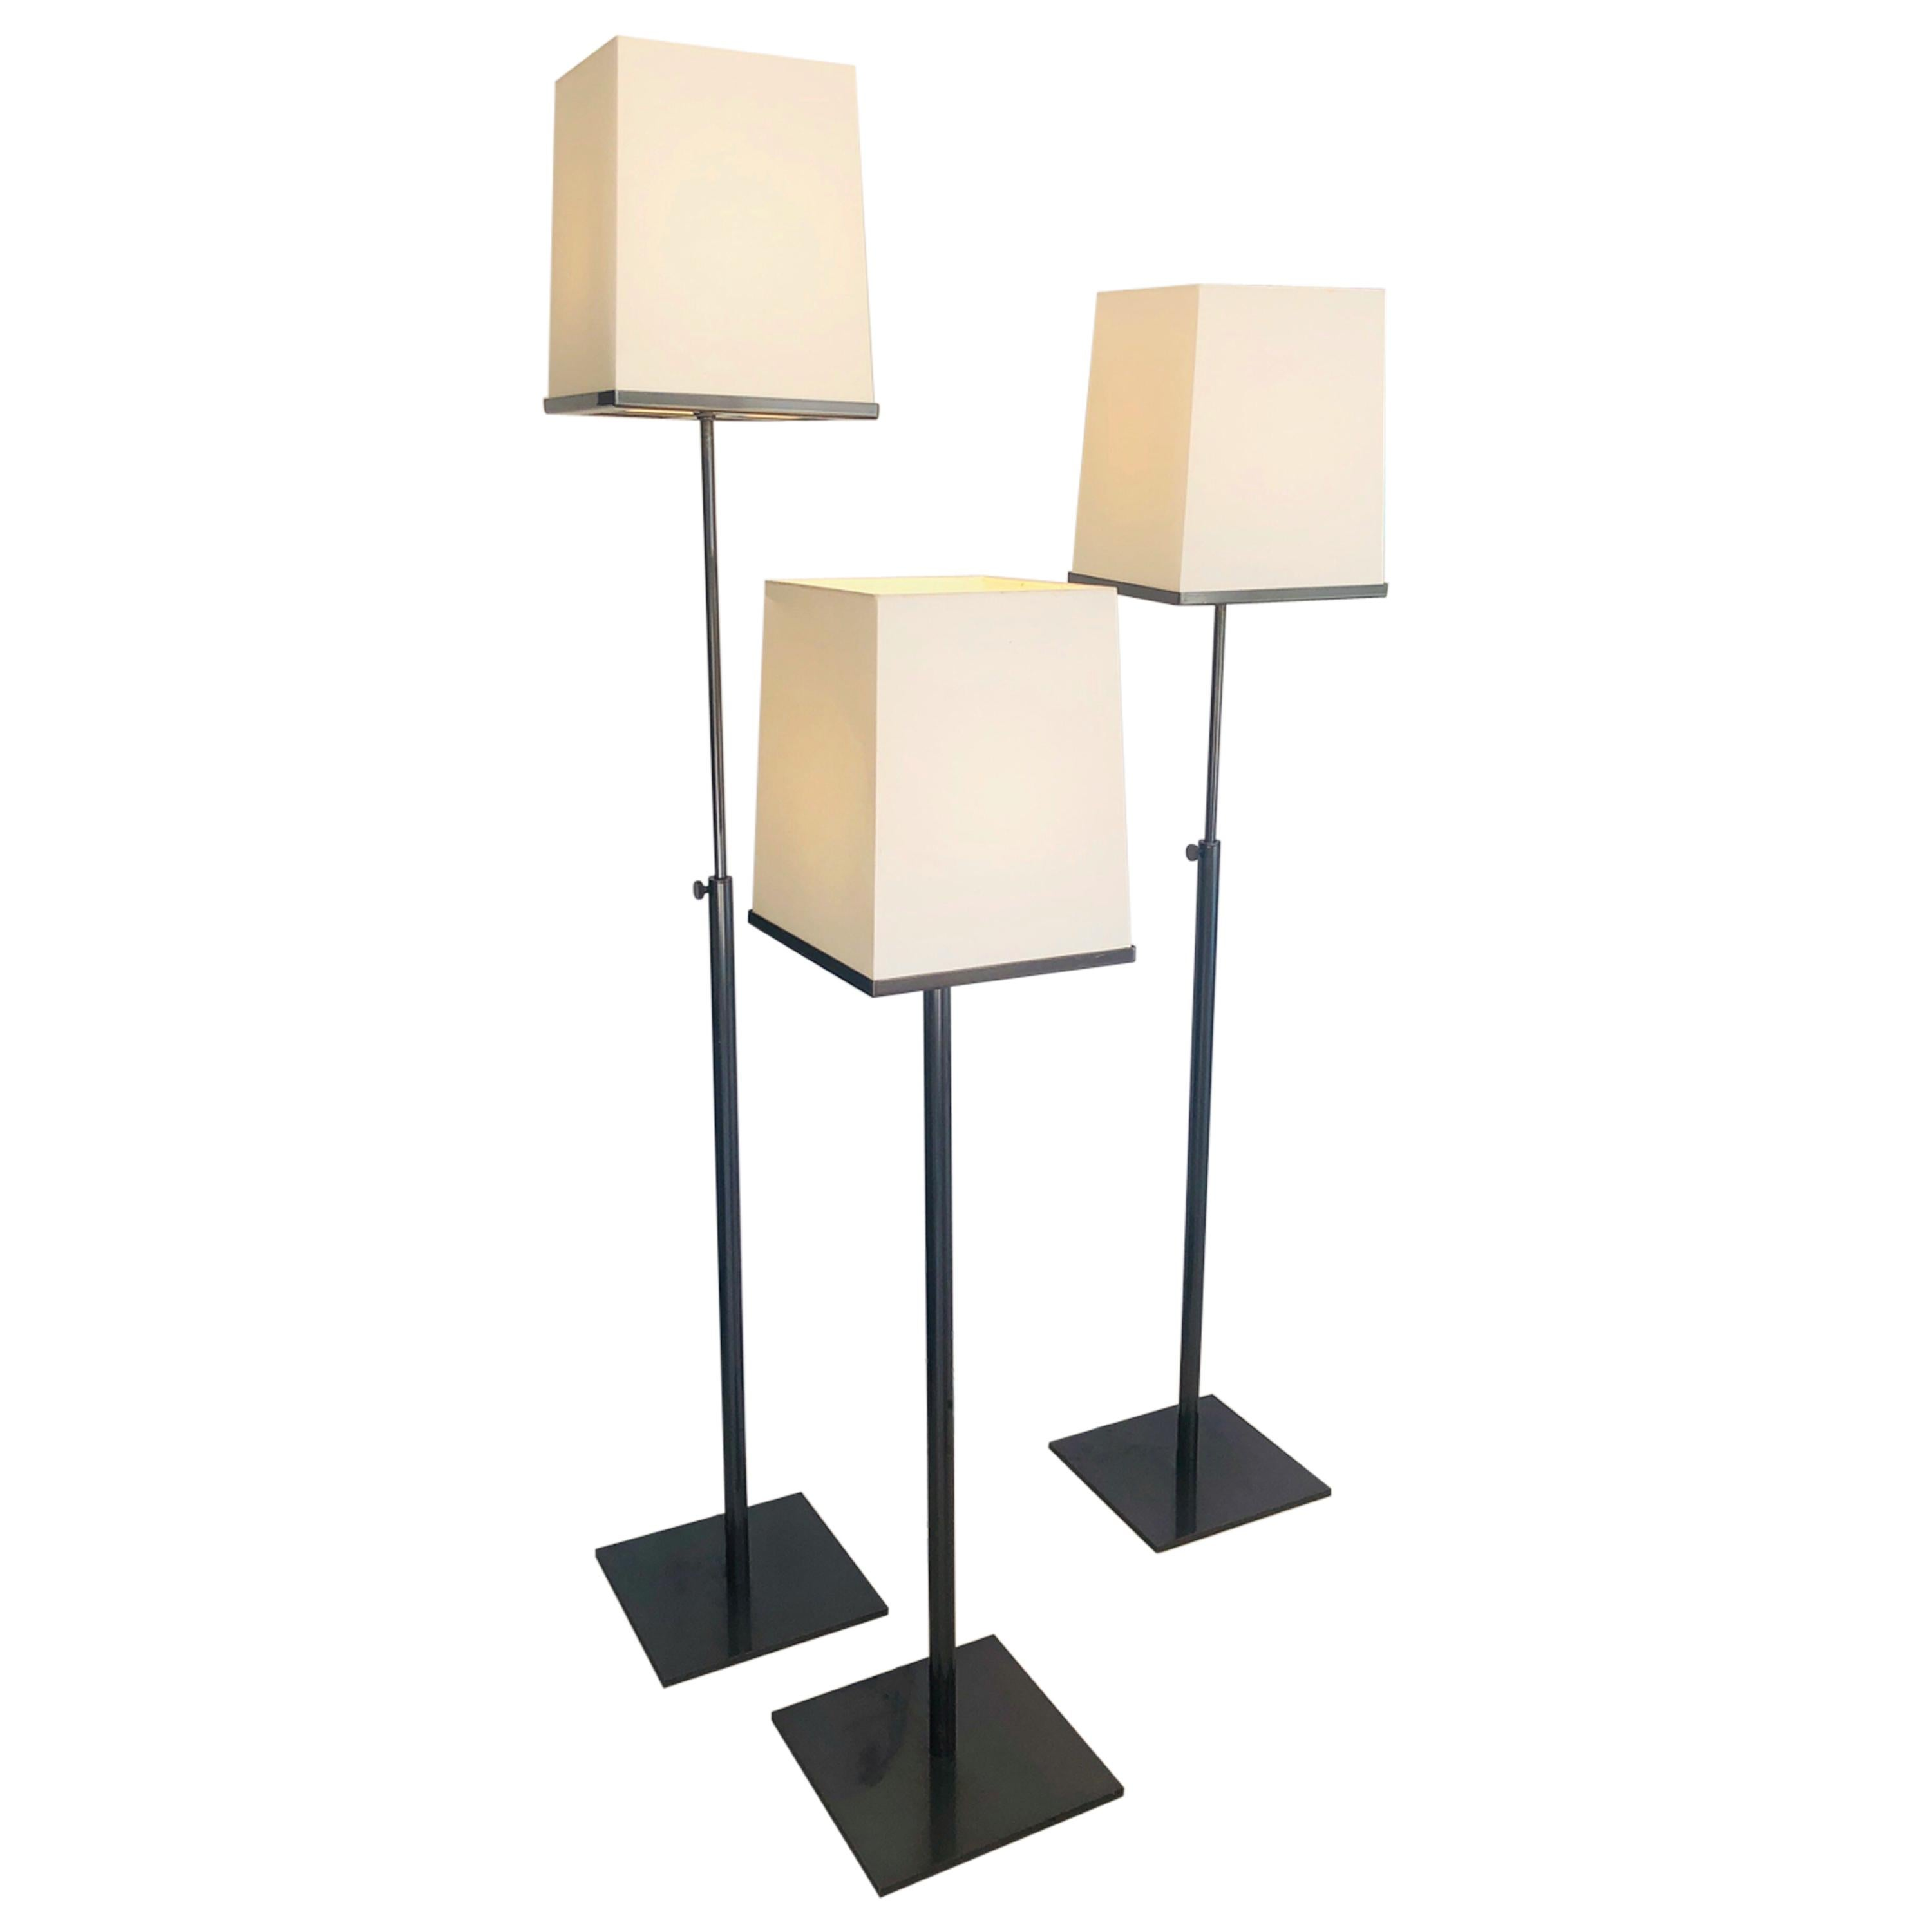 Holly Hunt Bronze Telescopic Floor Lamp, 3 Available